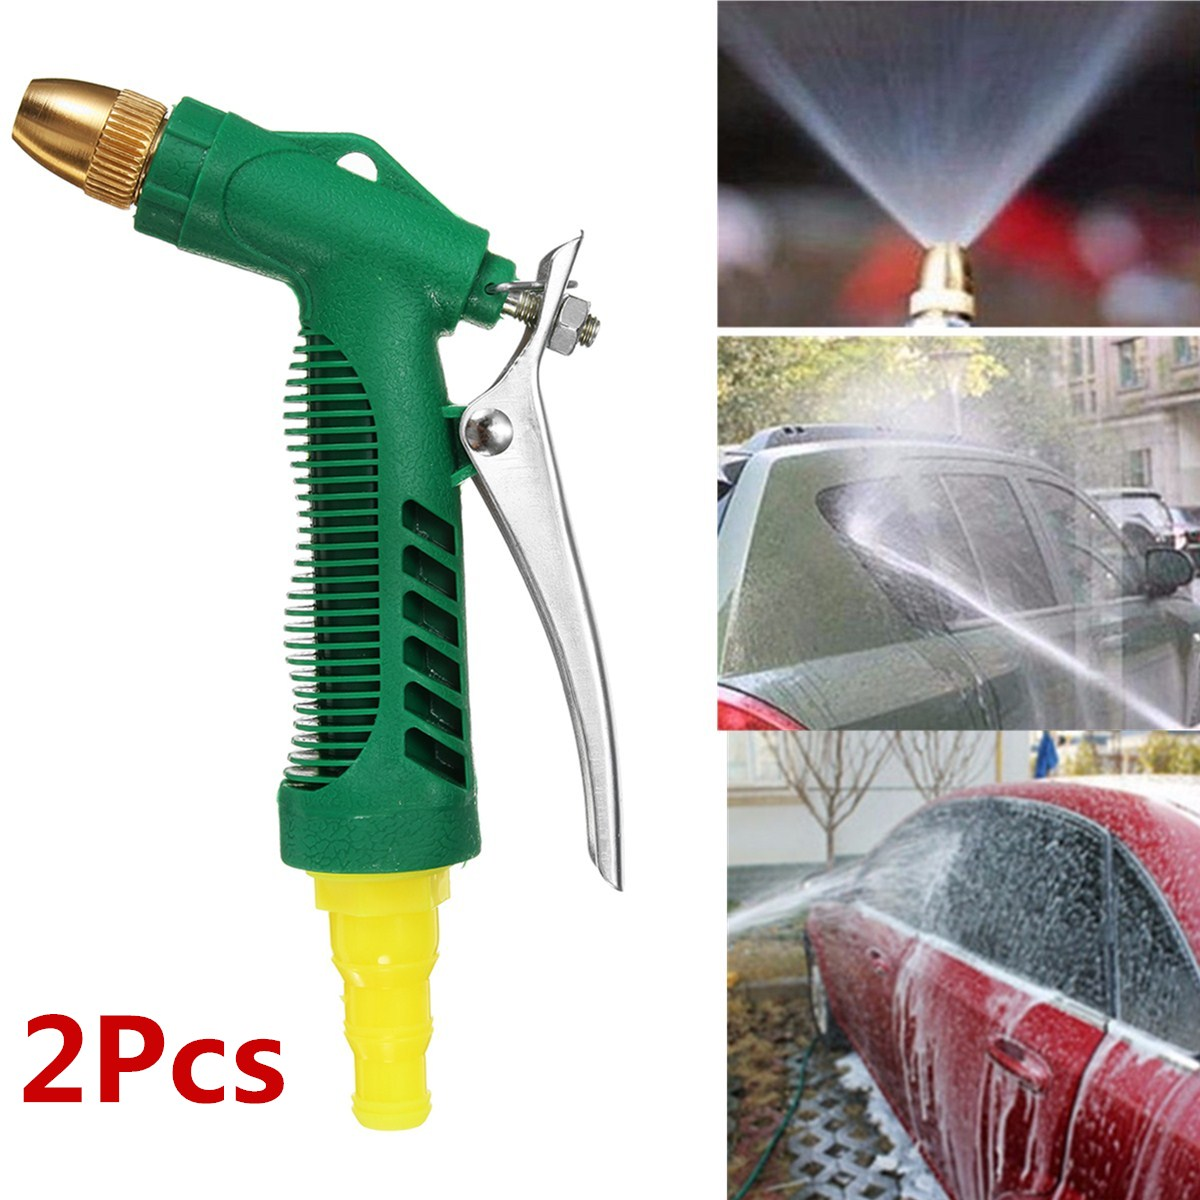 2 PCS ABS High Pressure Hose Nozzle Garden Auto Car Washing Water Gun Sprayer 3 Adjustable Watering Patterns Watering Plants, Cleaning, Showering Pets